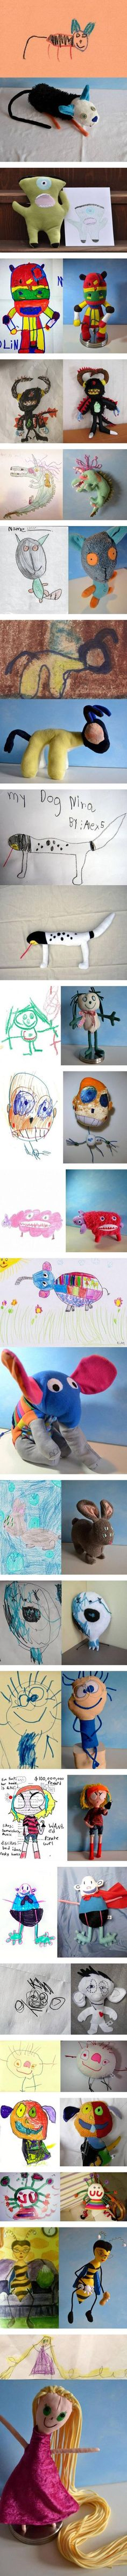 Toys made from children's drawings